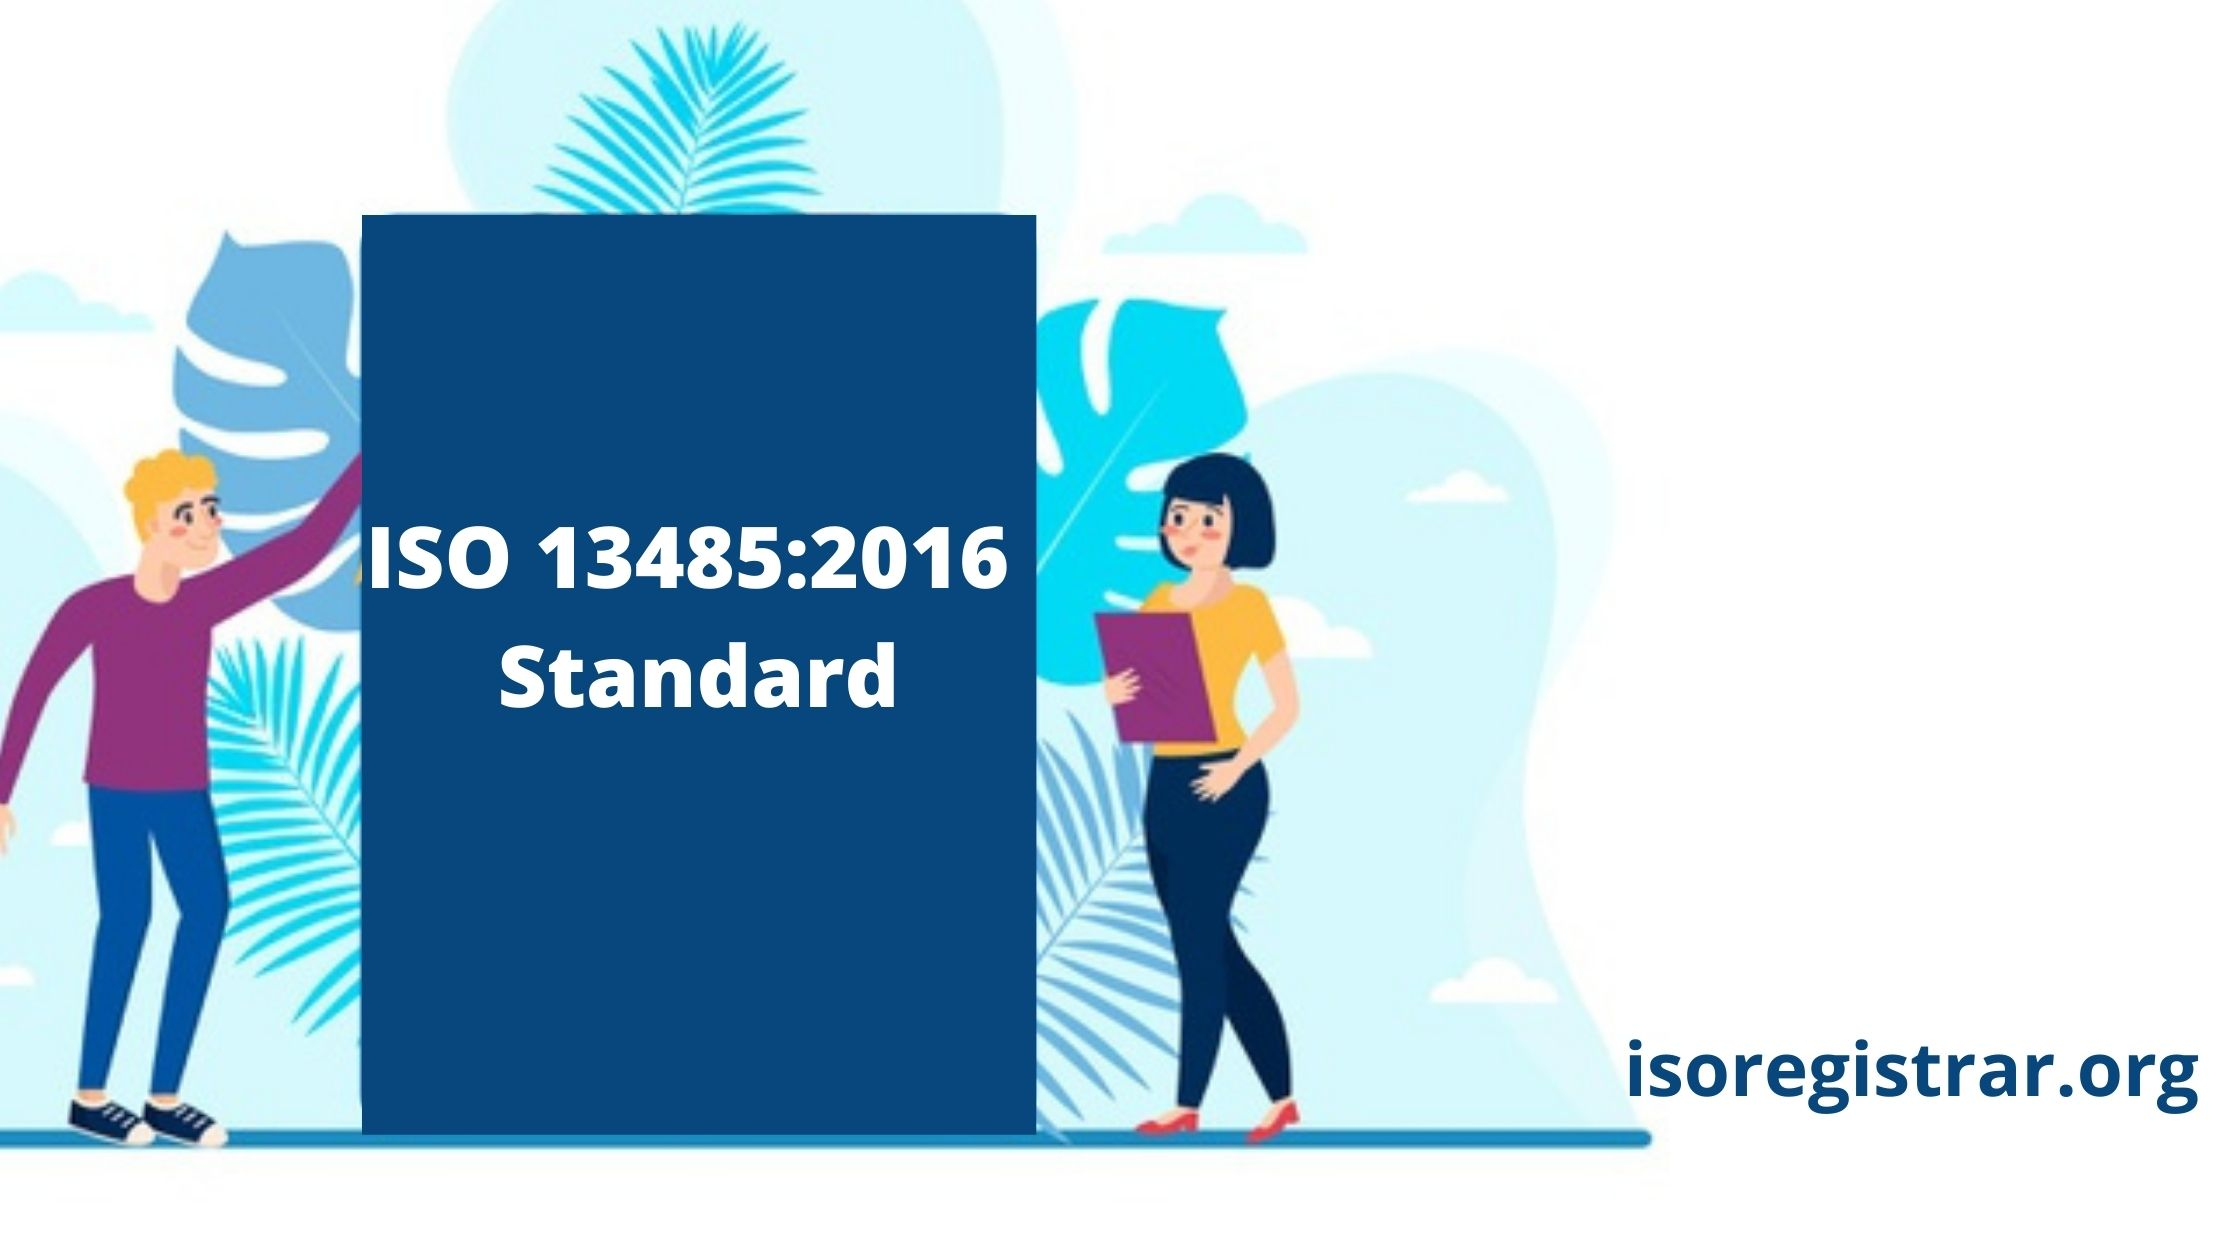 ISO 13485:2016 Standard - QMS for Medical Industry